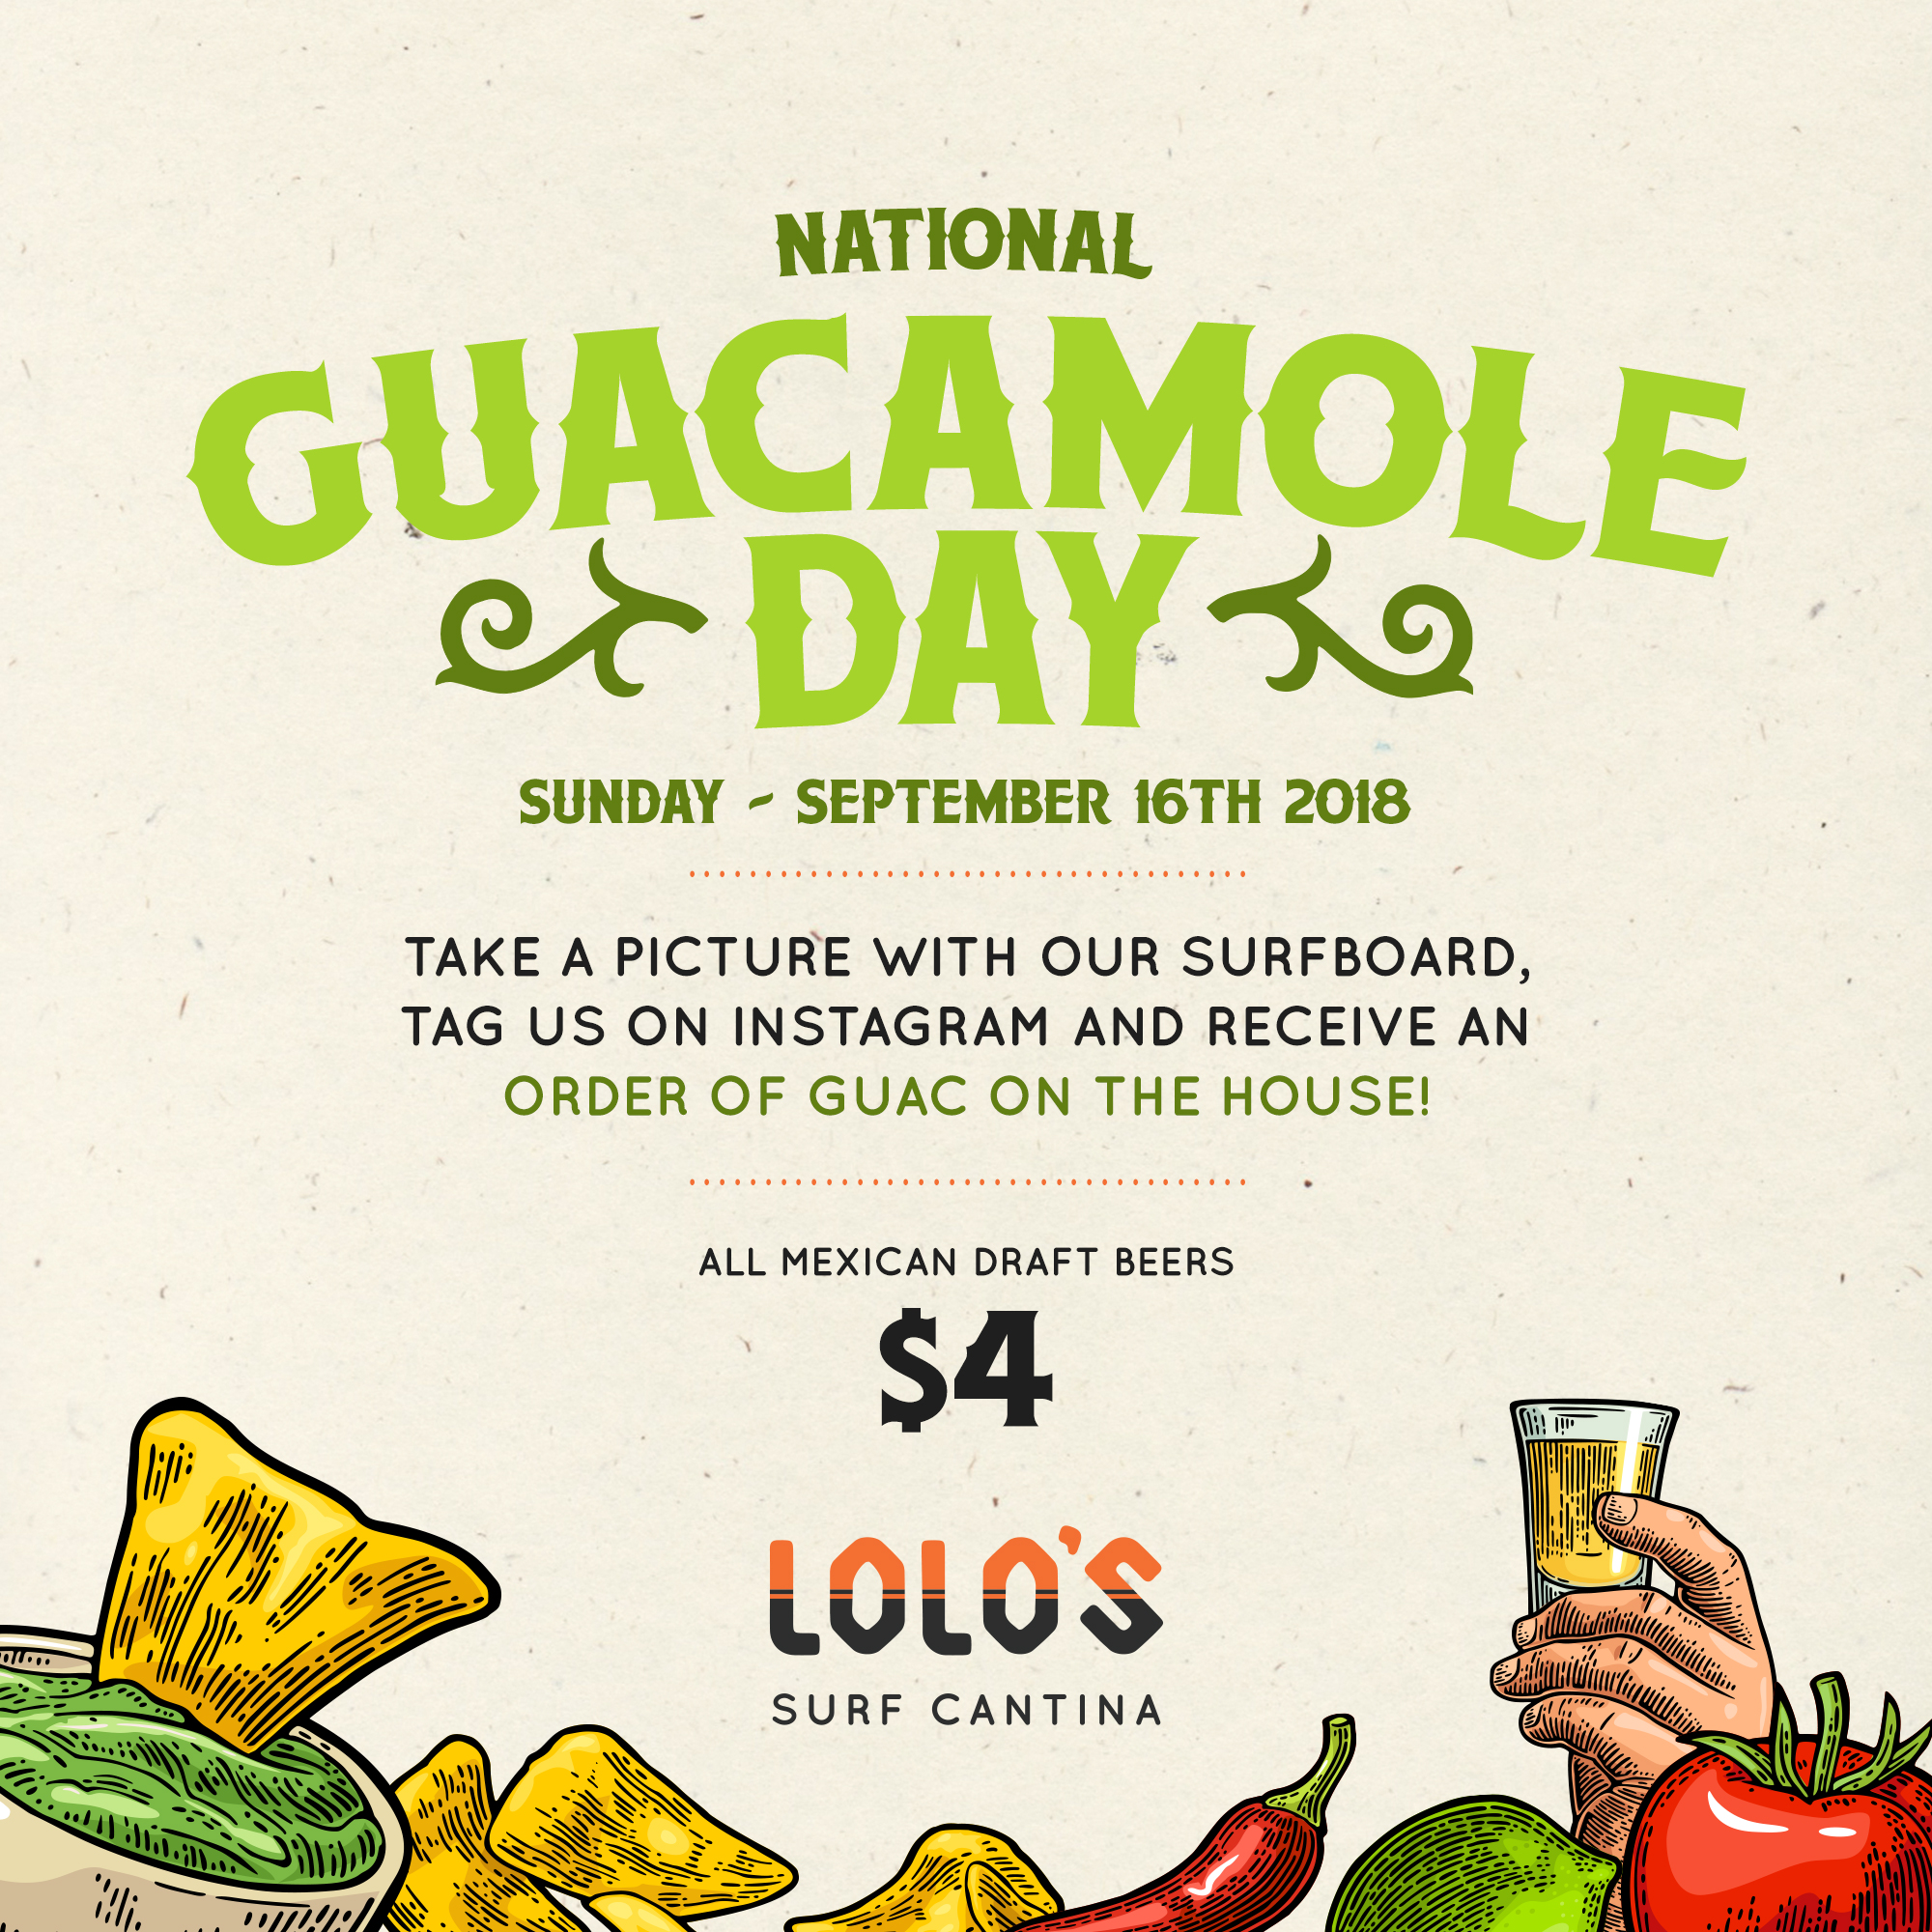 National Guacamole Day 2018 Flyer.jpg